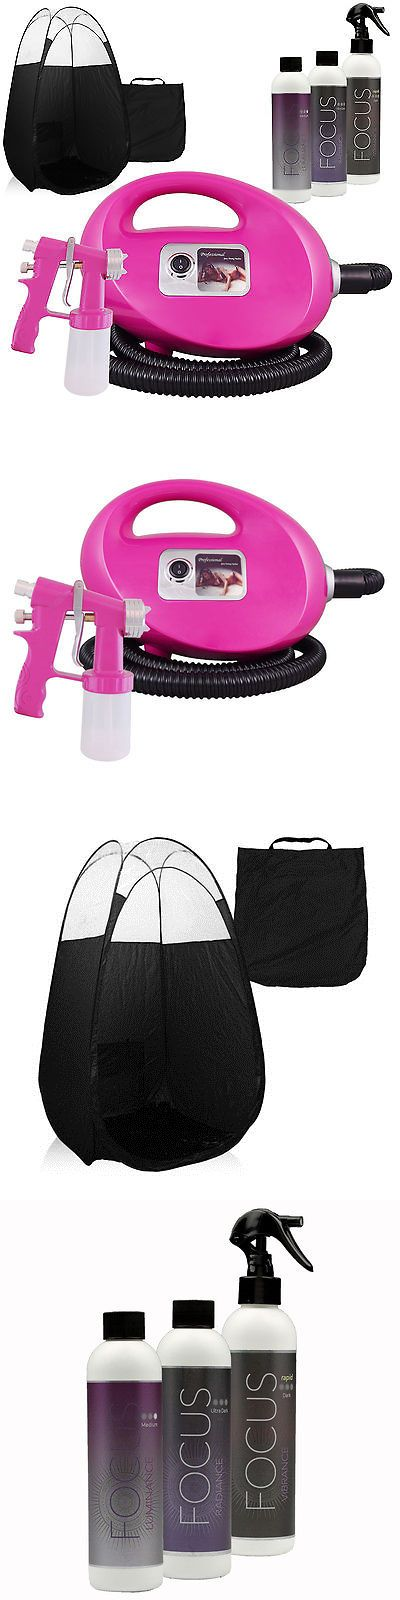 Airbrush Tanning Kits: Pink Fascination Fx Spray Tanning Kit With Tan Solution And Black Tent -> BUY IT NOW ONLY: $219 on eBay!